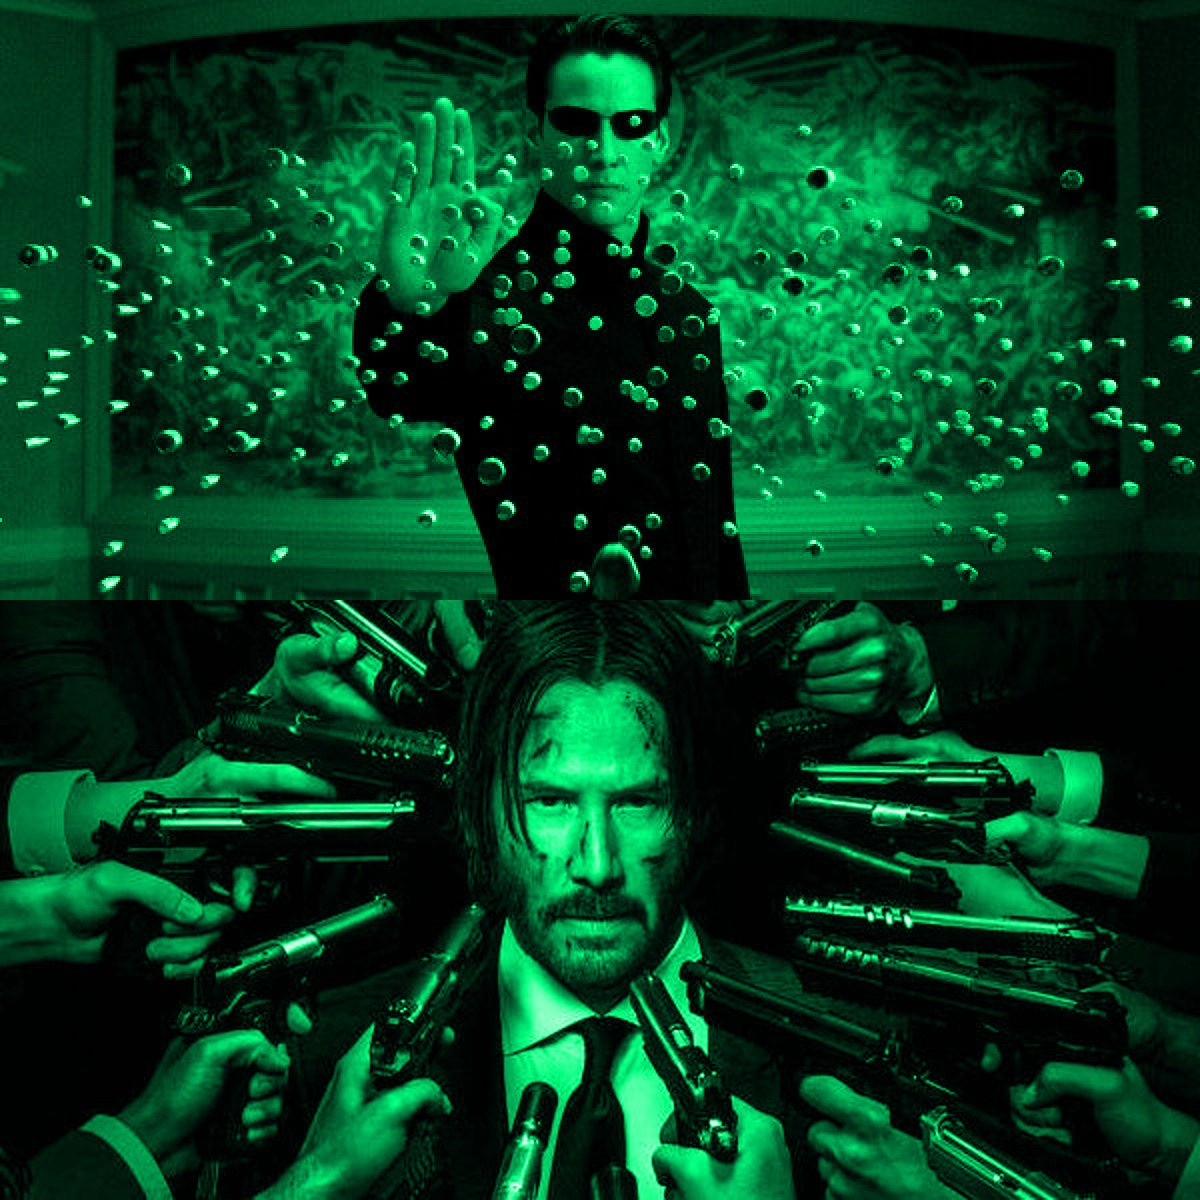 Neo from The Matrix dodging bullets and John Wick surrounded by guns.